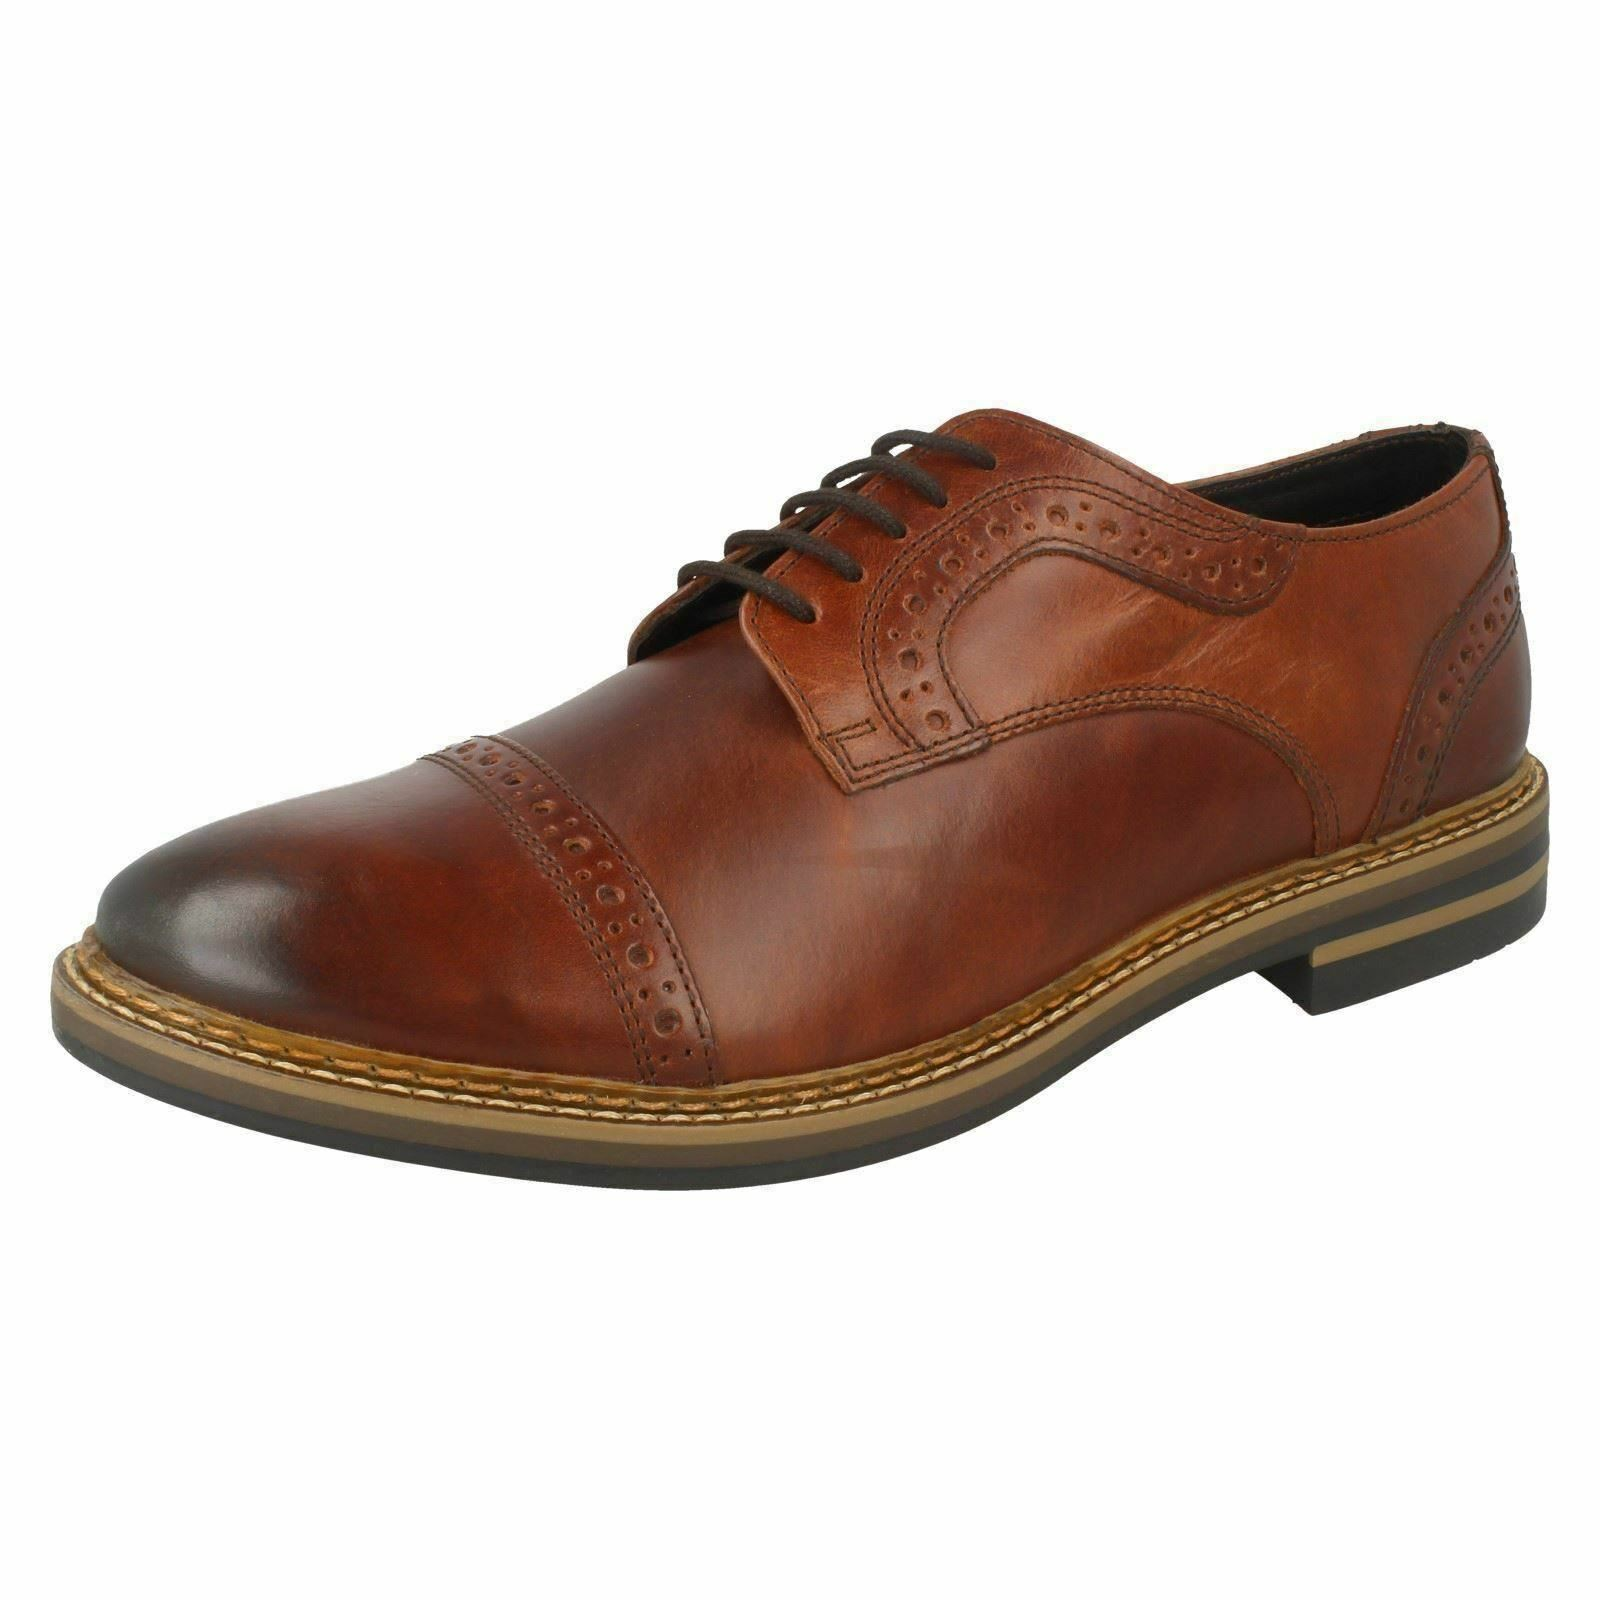 BUTLER BASE LONDON MENS LACE UP SMART braun LEATHER BROGUES FORMAL OXFORDS schuhe